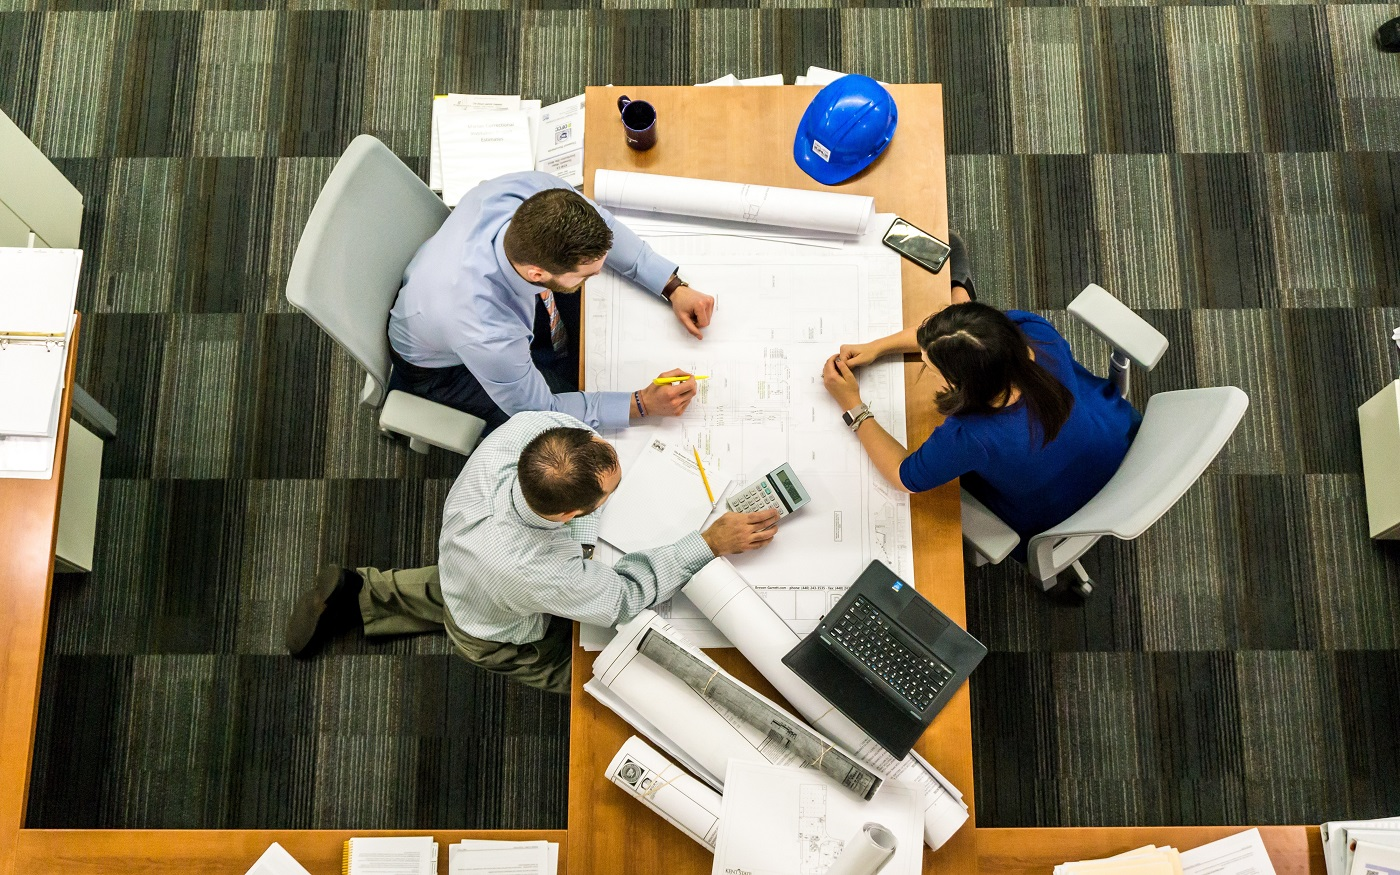 Three architects collaborating at table. Photo from Pexels.